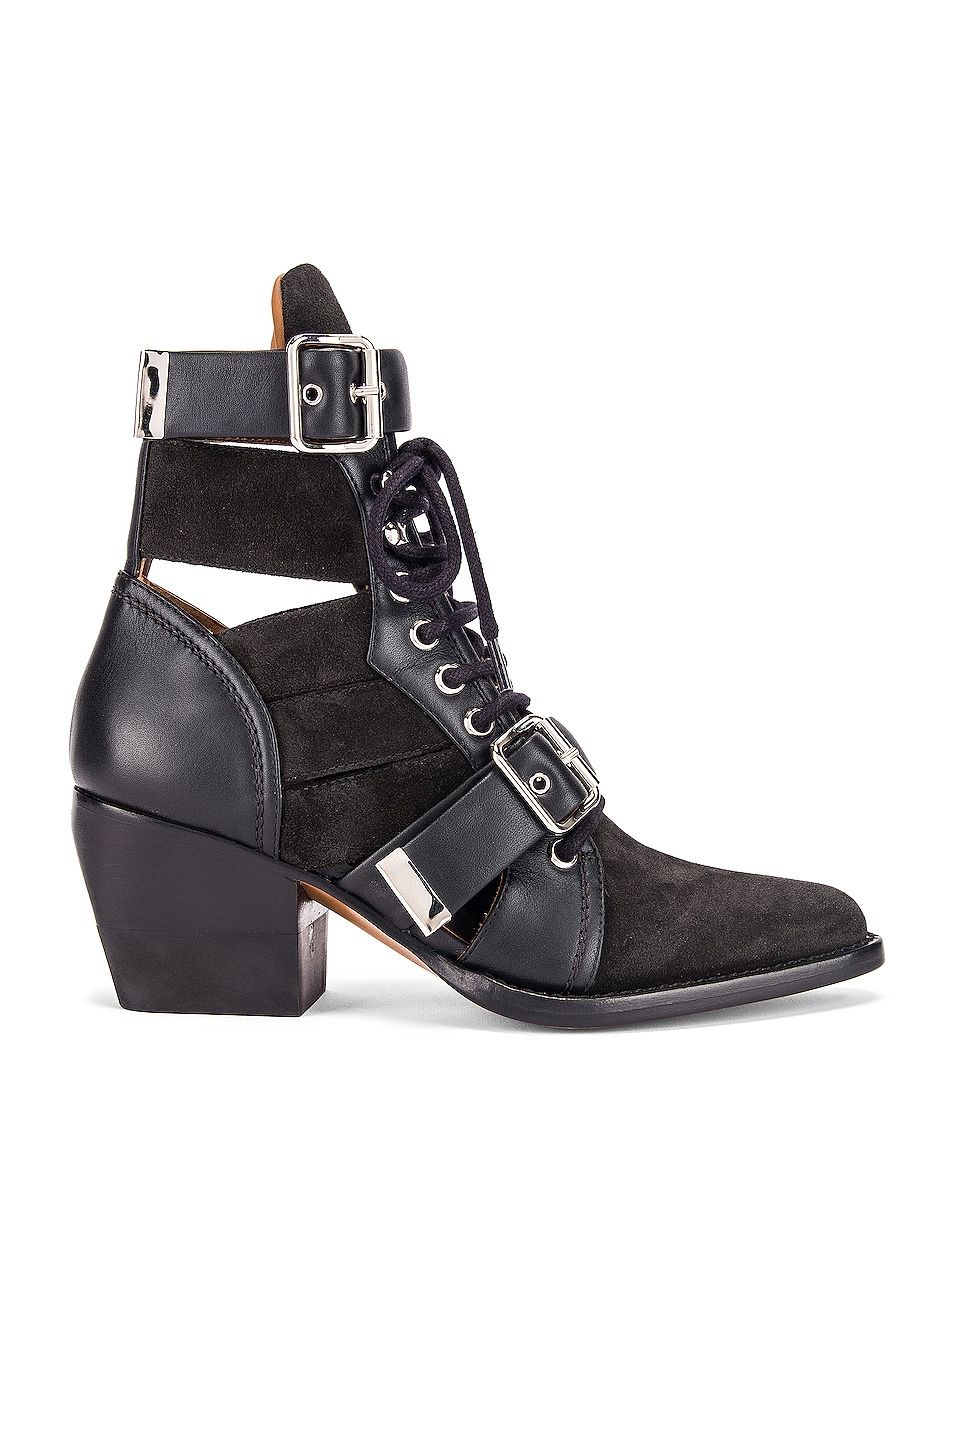 Image 1 of Chloe Lace Up Buckle Boots in Charcoal Black